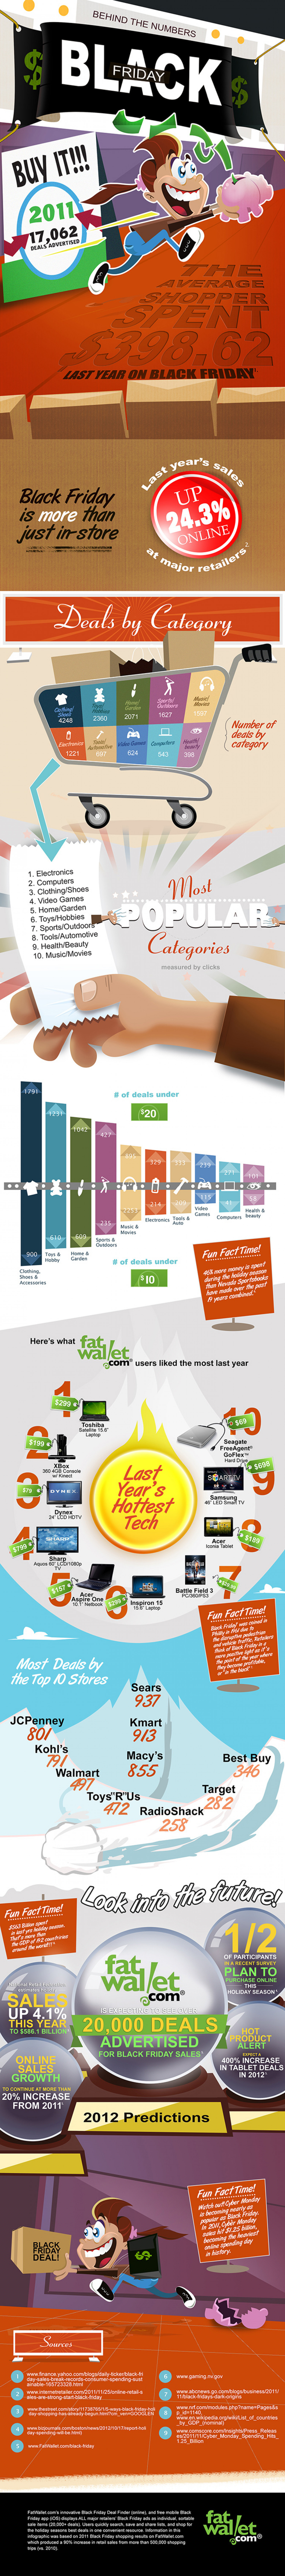 Black Friday Deals Infographic